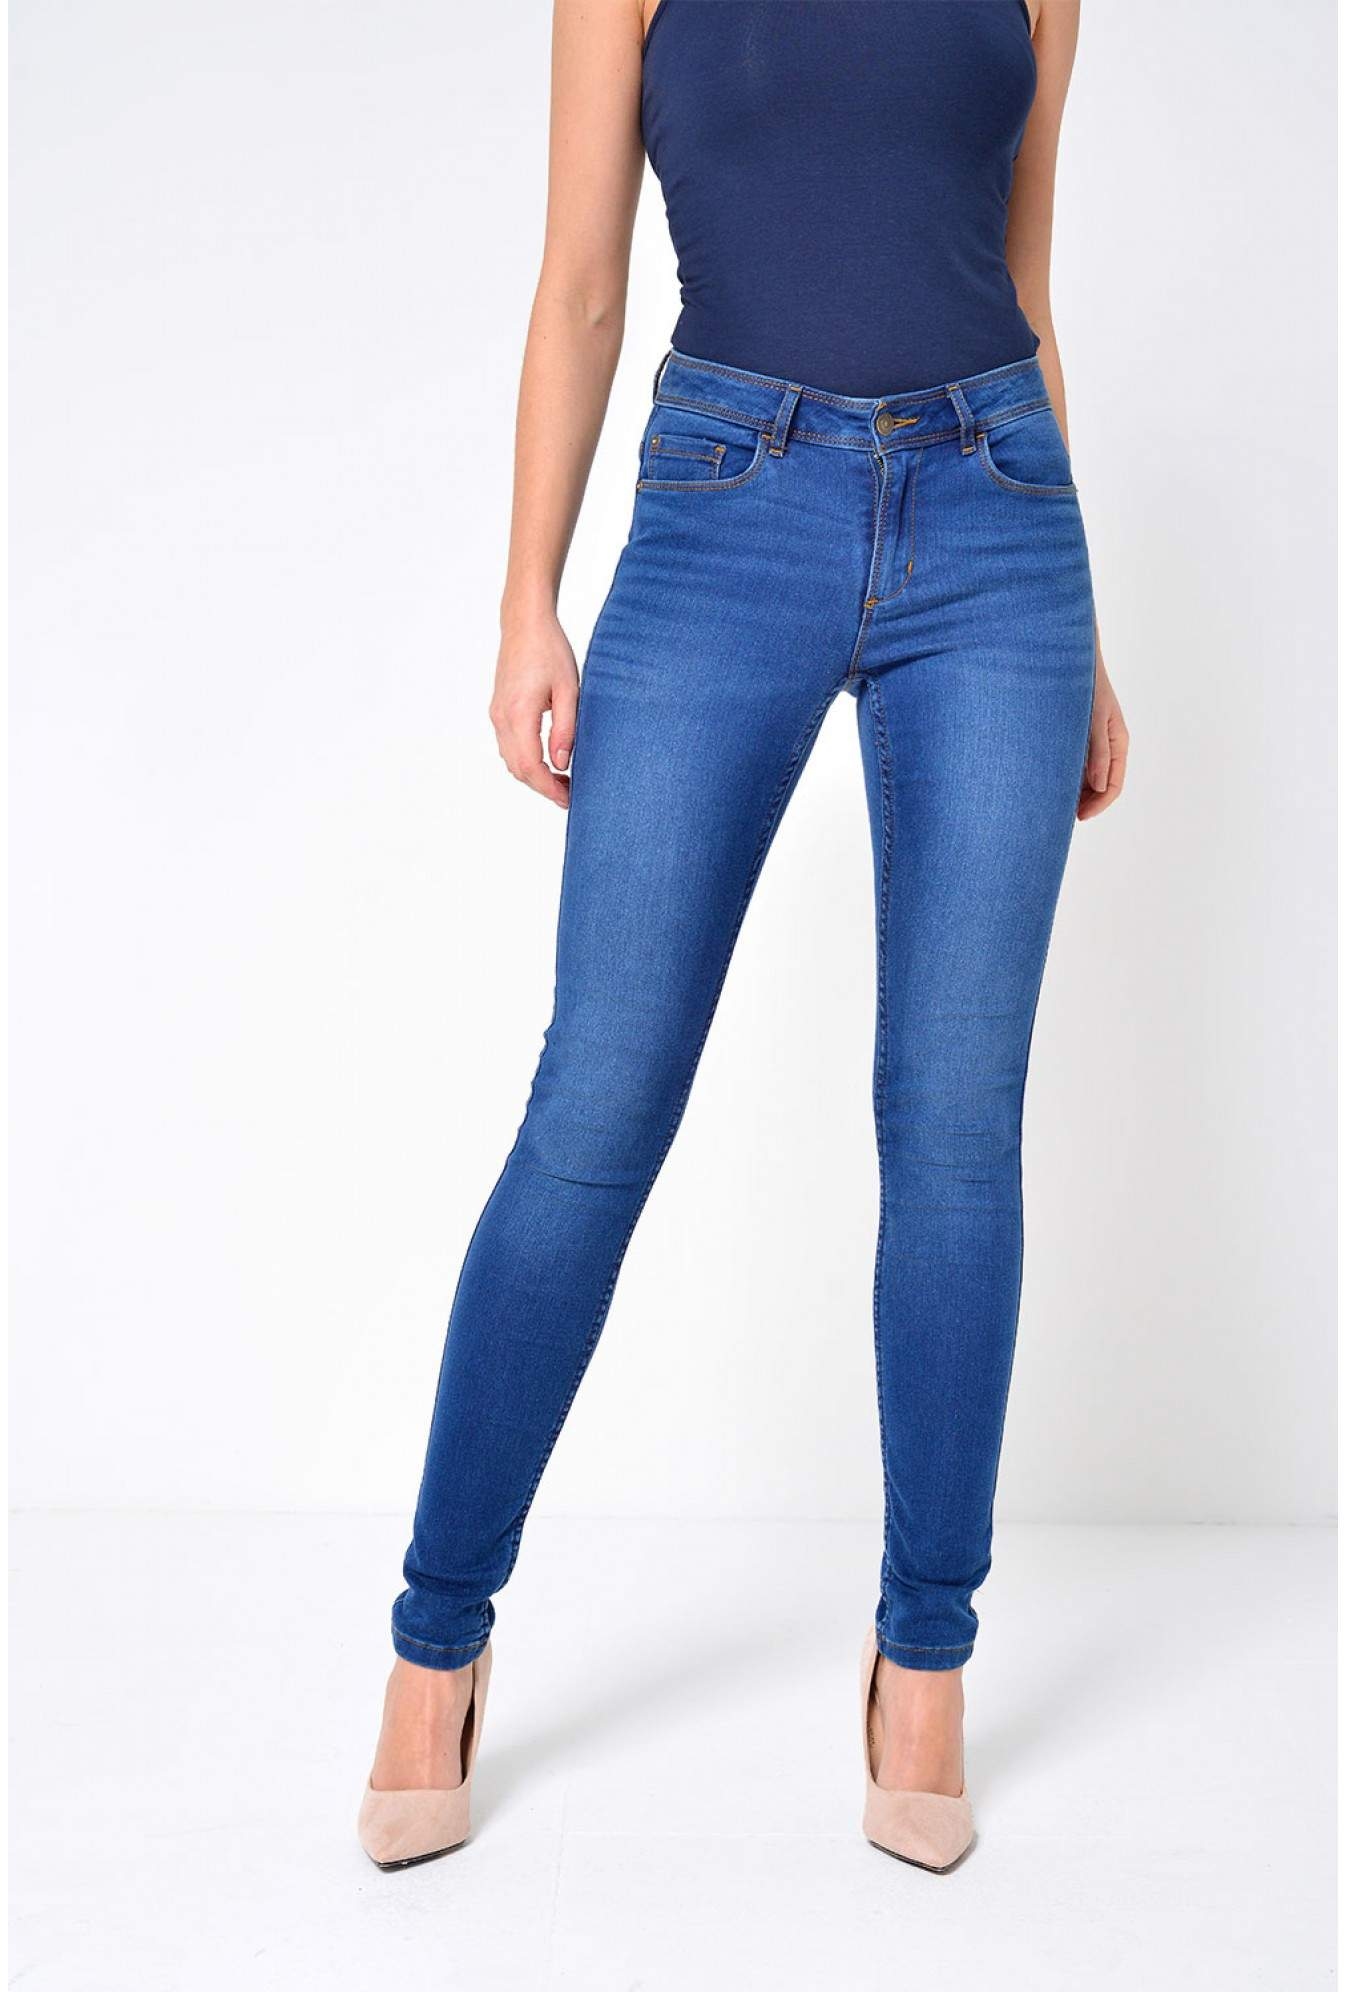 2ee1b9fa81aa More Views. Ultimate Regular Length Soft Skinny Jeans. Only